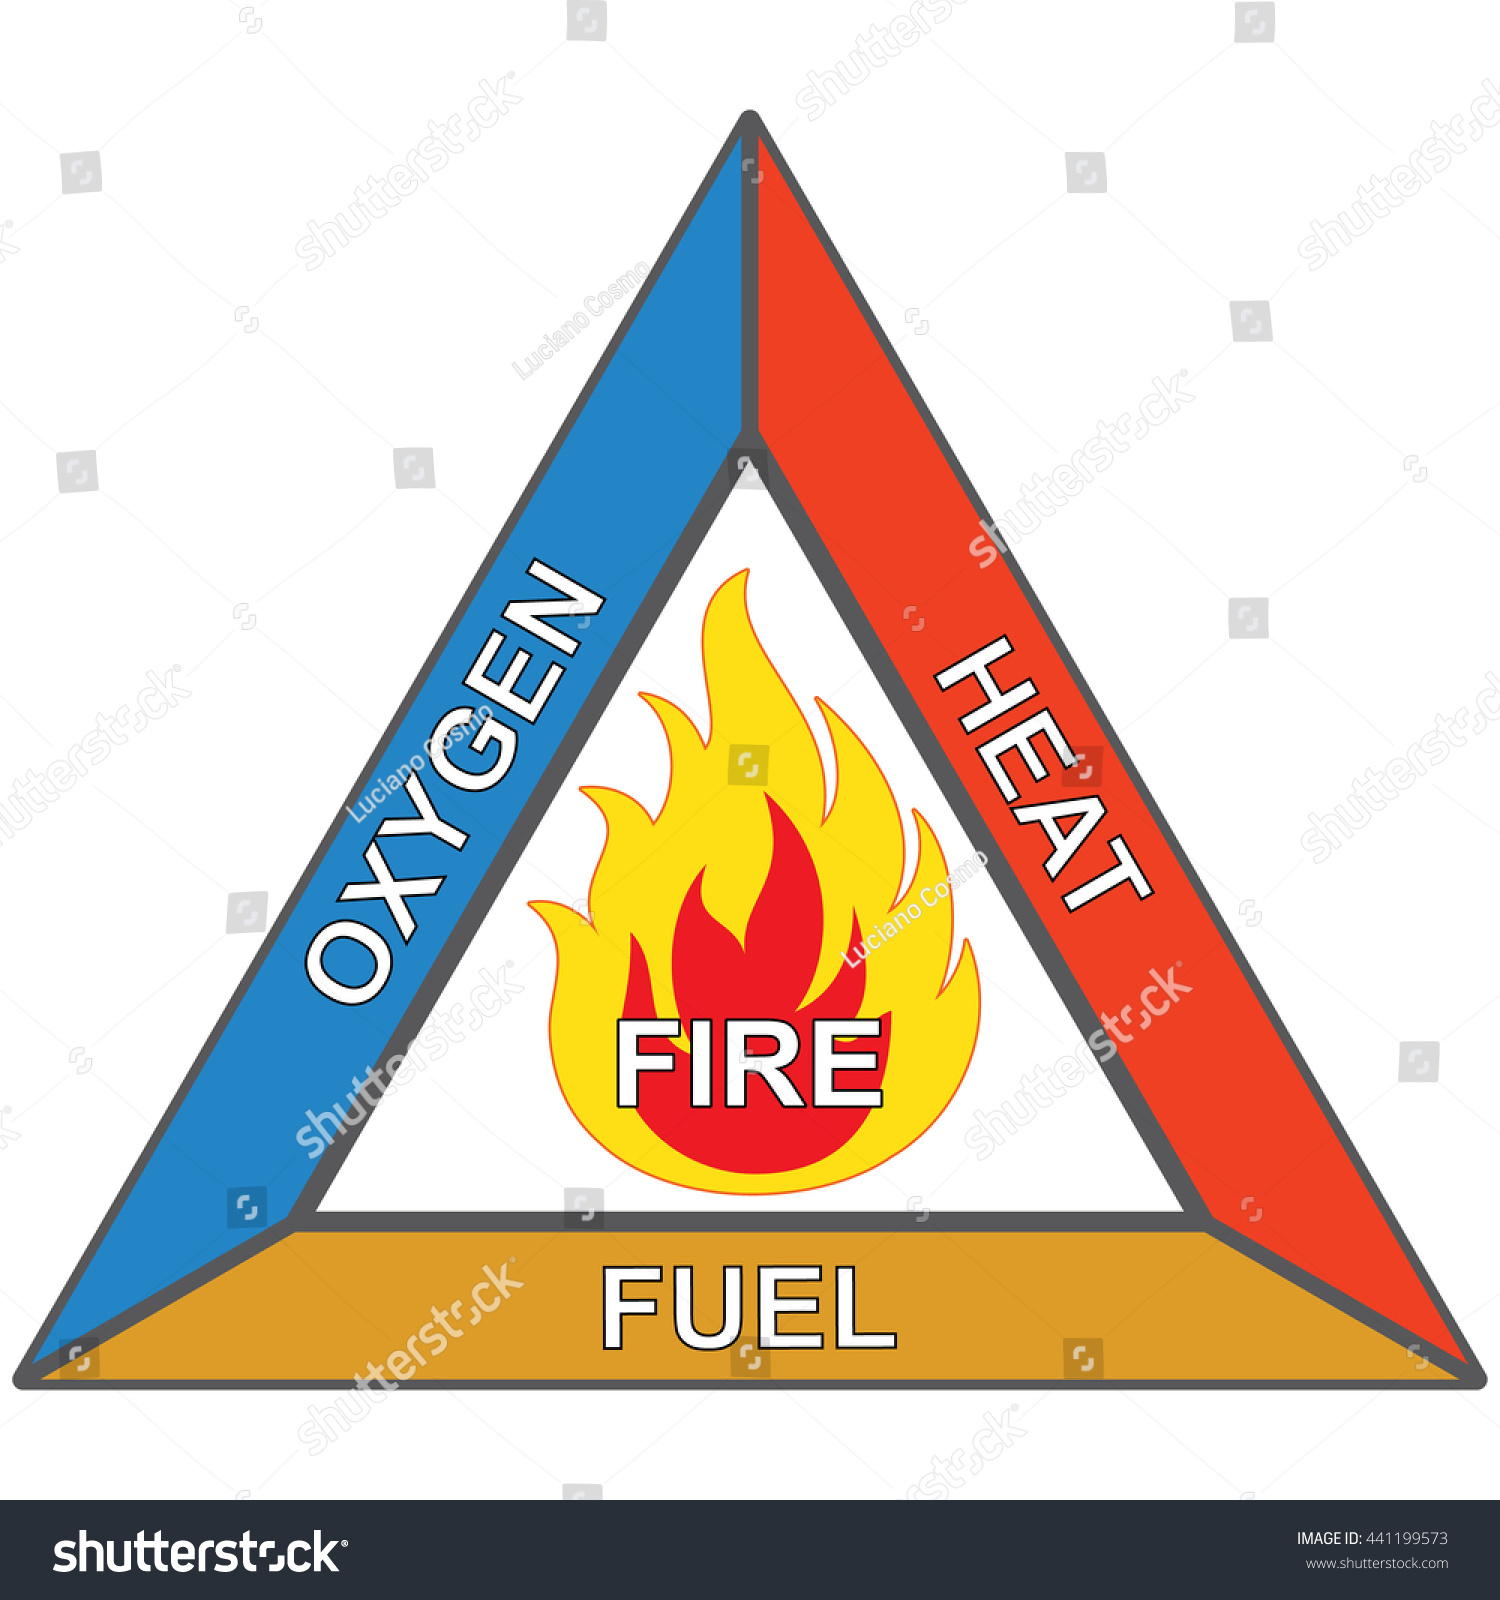 Icons Signaling Flammable Fire Triangle Oxygen Stock Vector ...